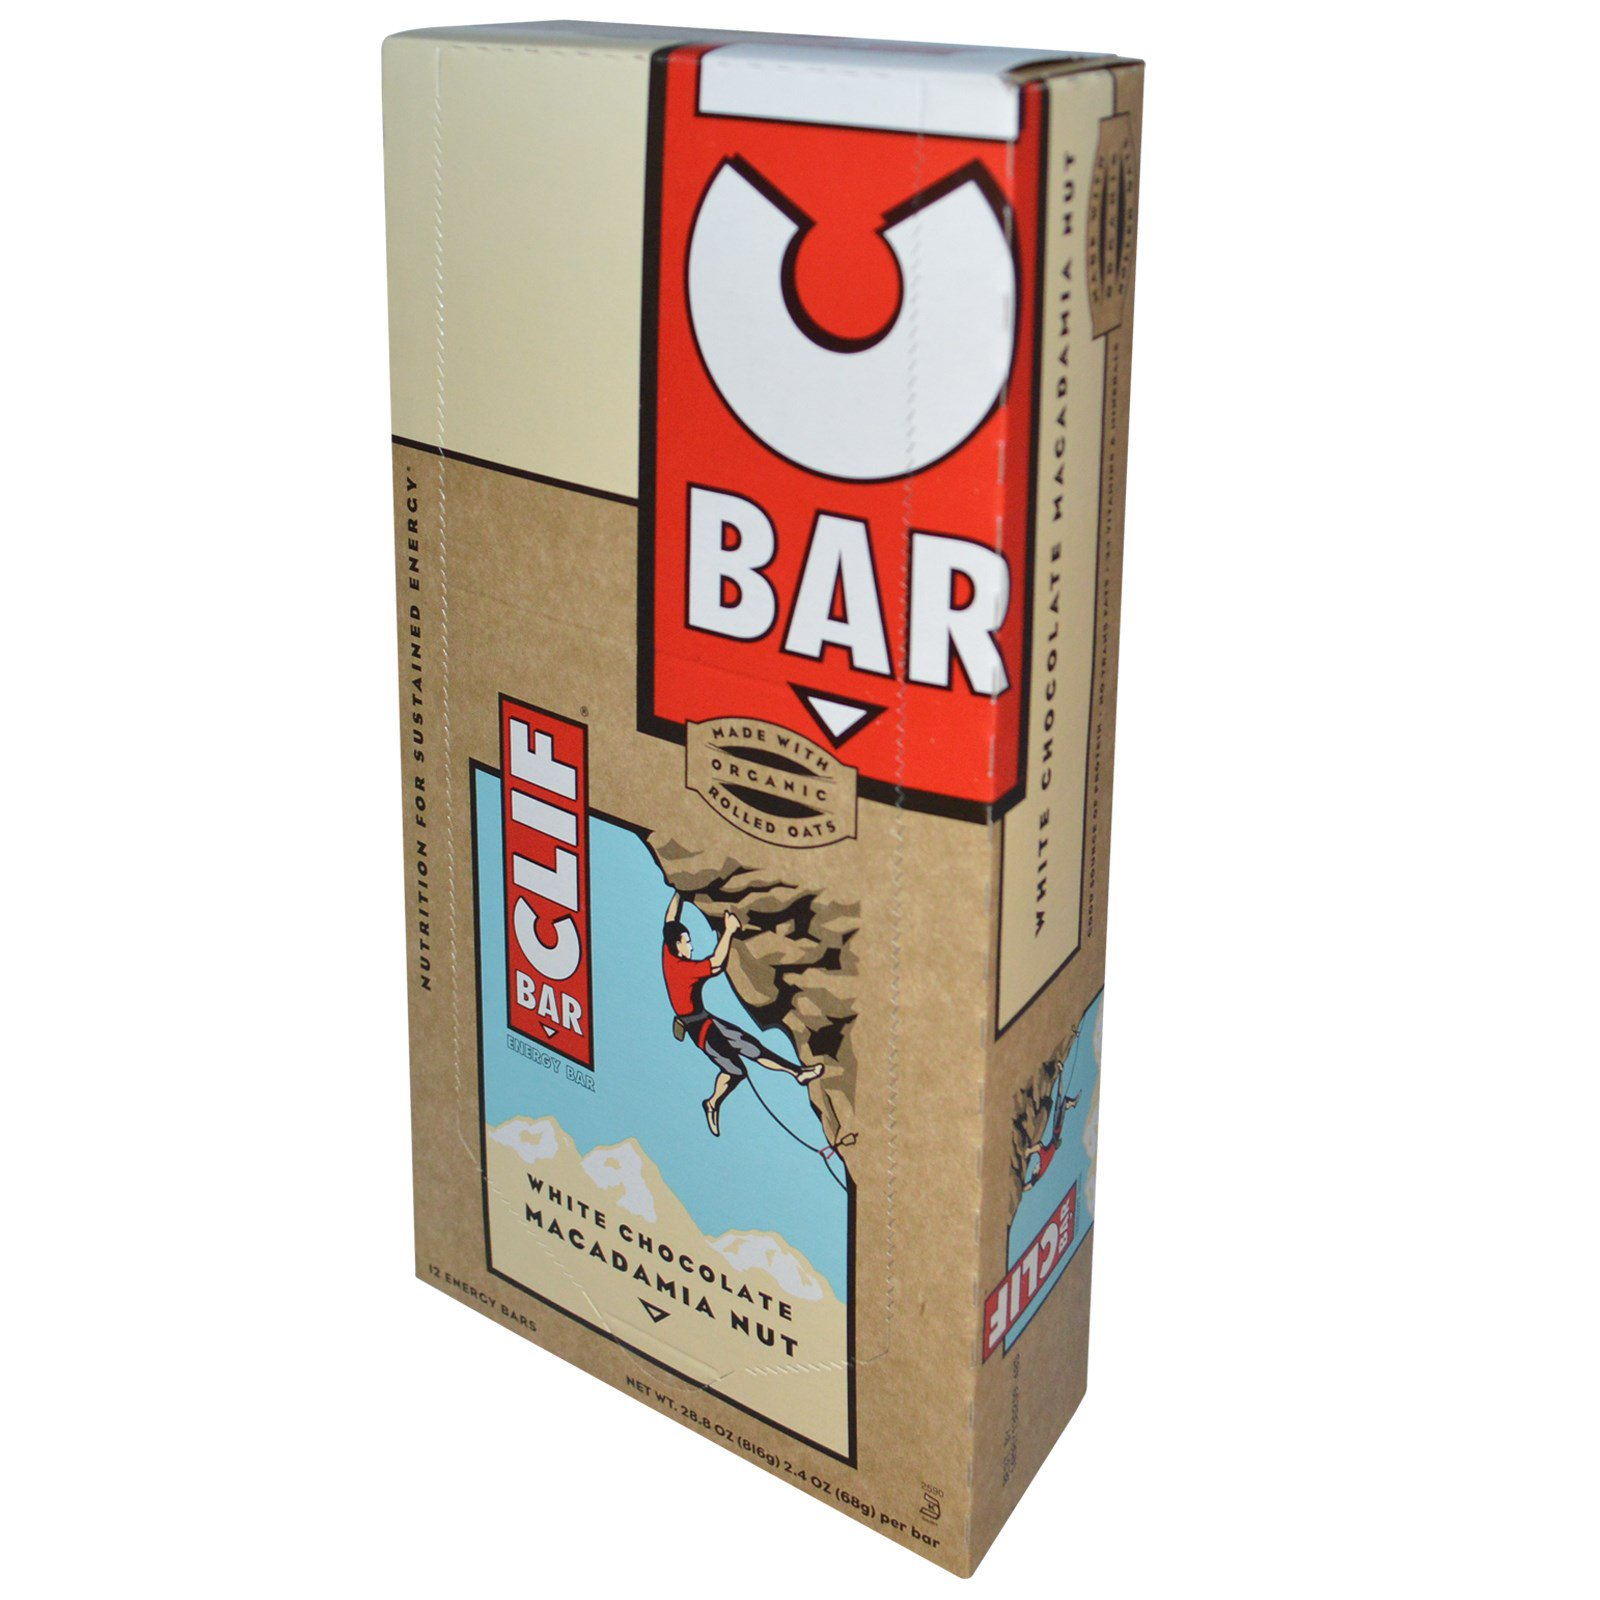 Clif Bar, Energy Bar, White Chocolate Macadamia Nut, 12 Bars, 2.4 oz (68 g) Each